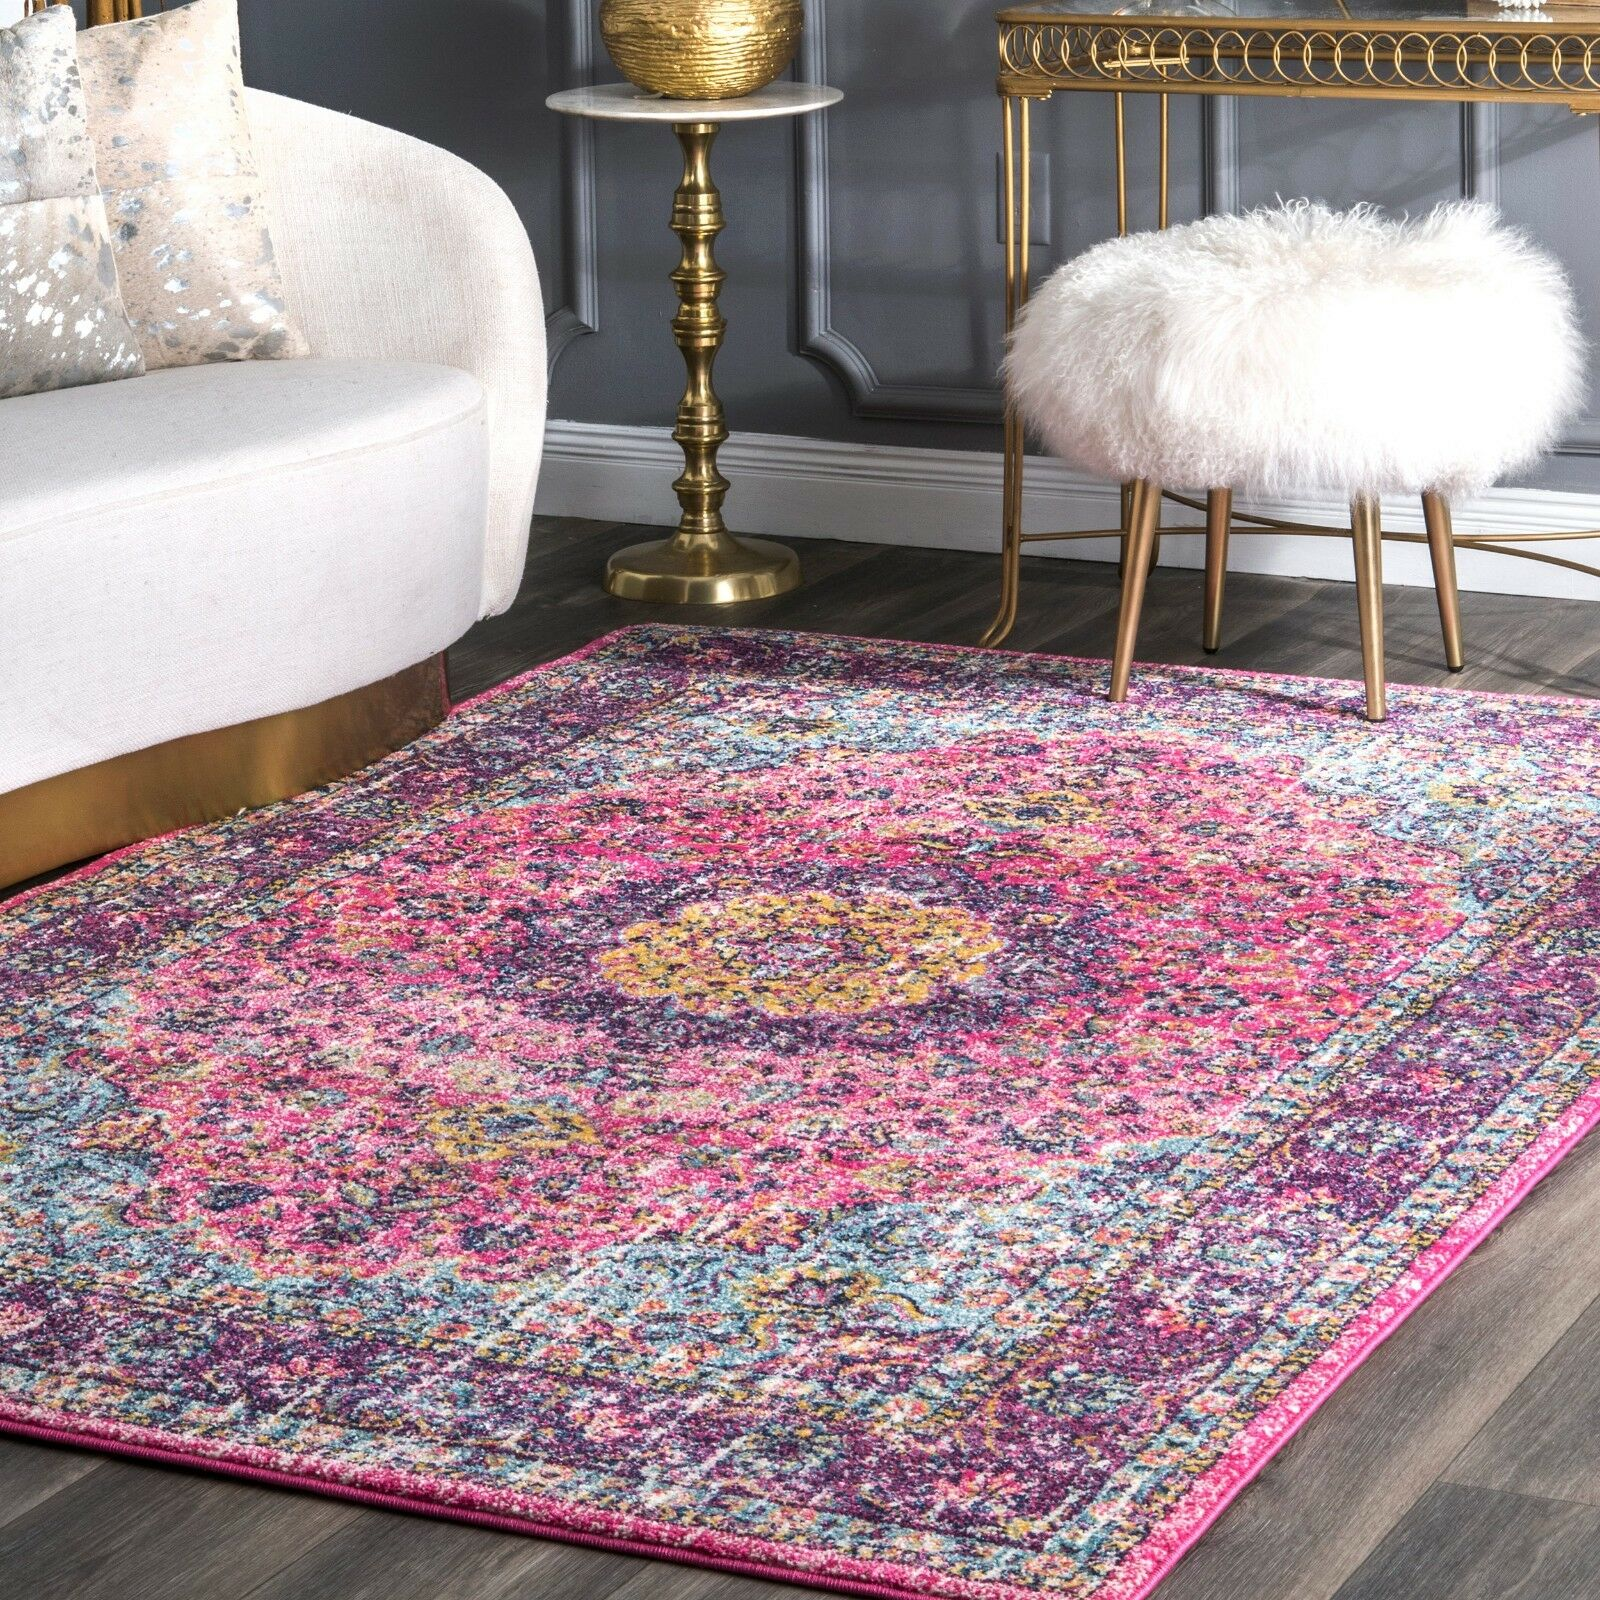 nuLOOM Traditional Oriental Distressed Area Rug in Pink, Pur